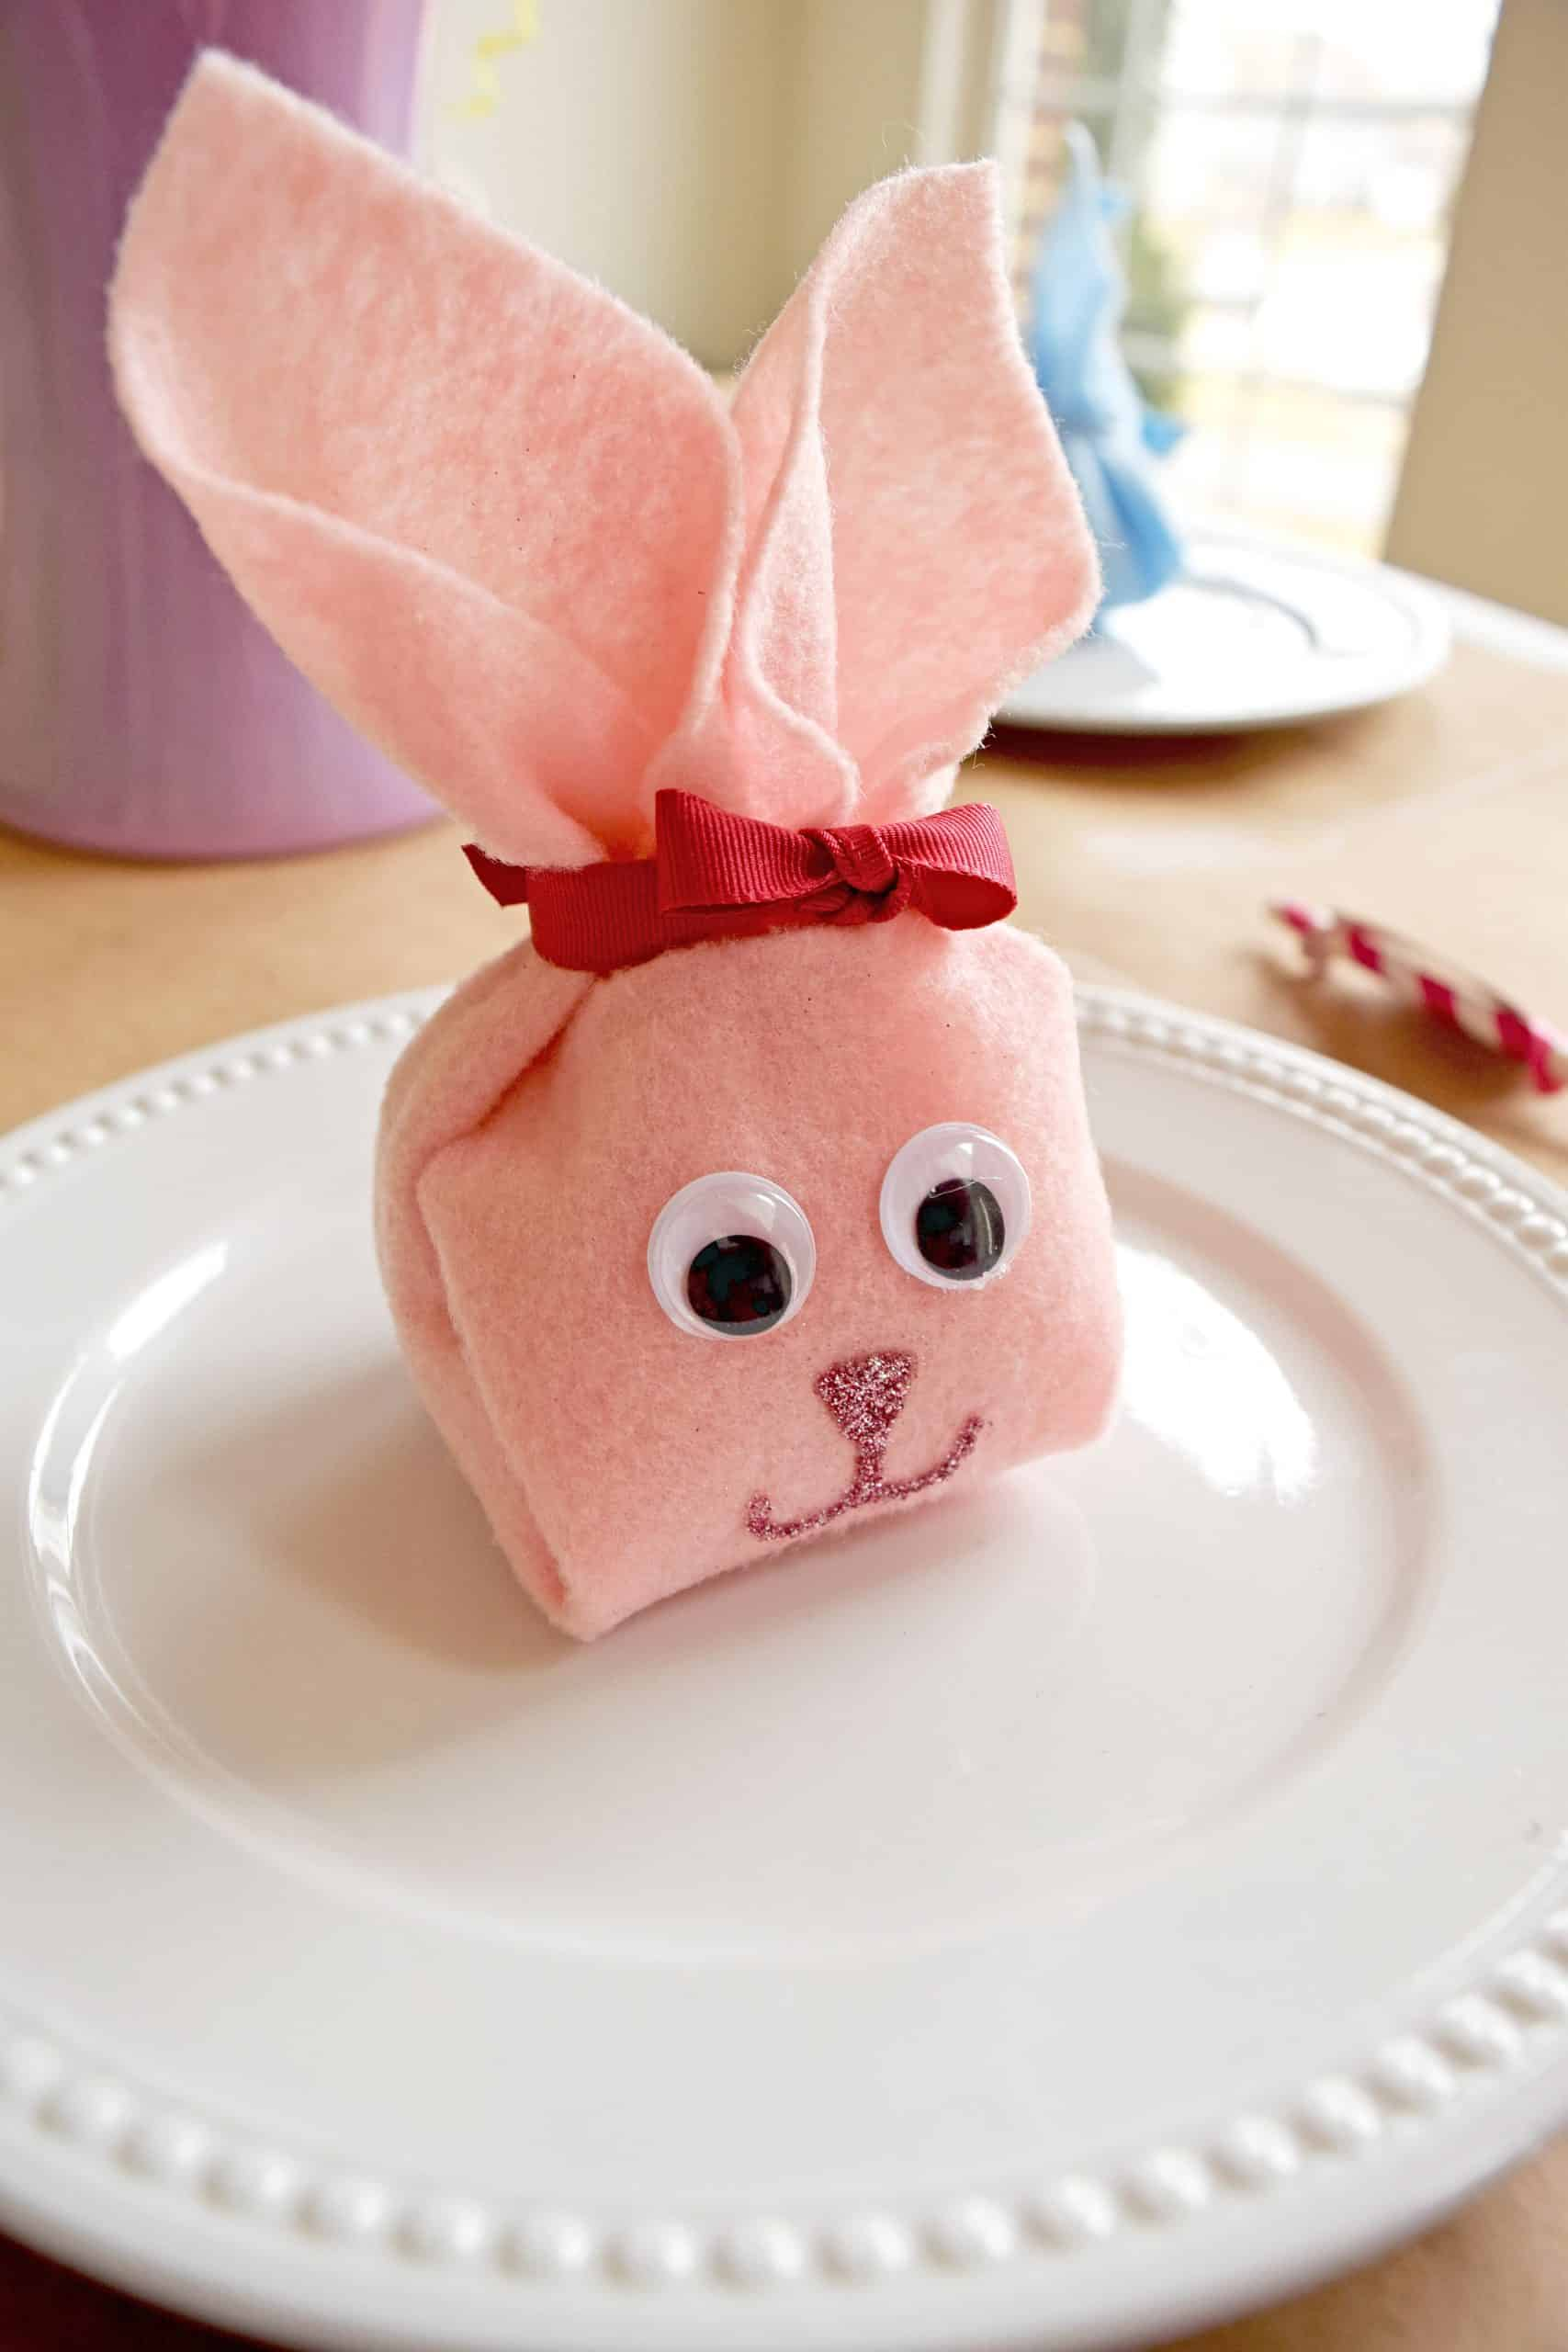 Pink DIY felt bunny pouch with googly eyes on white plate.